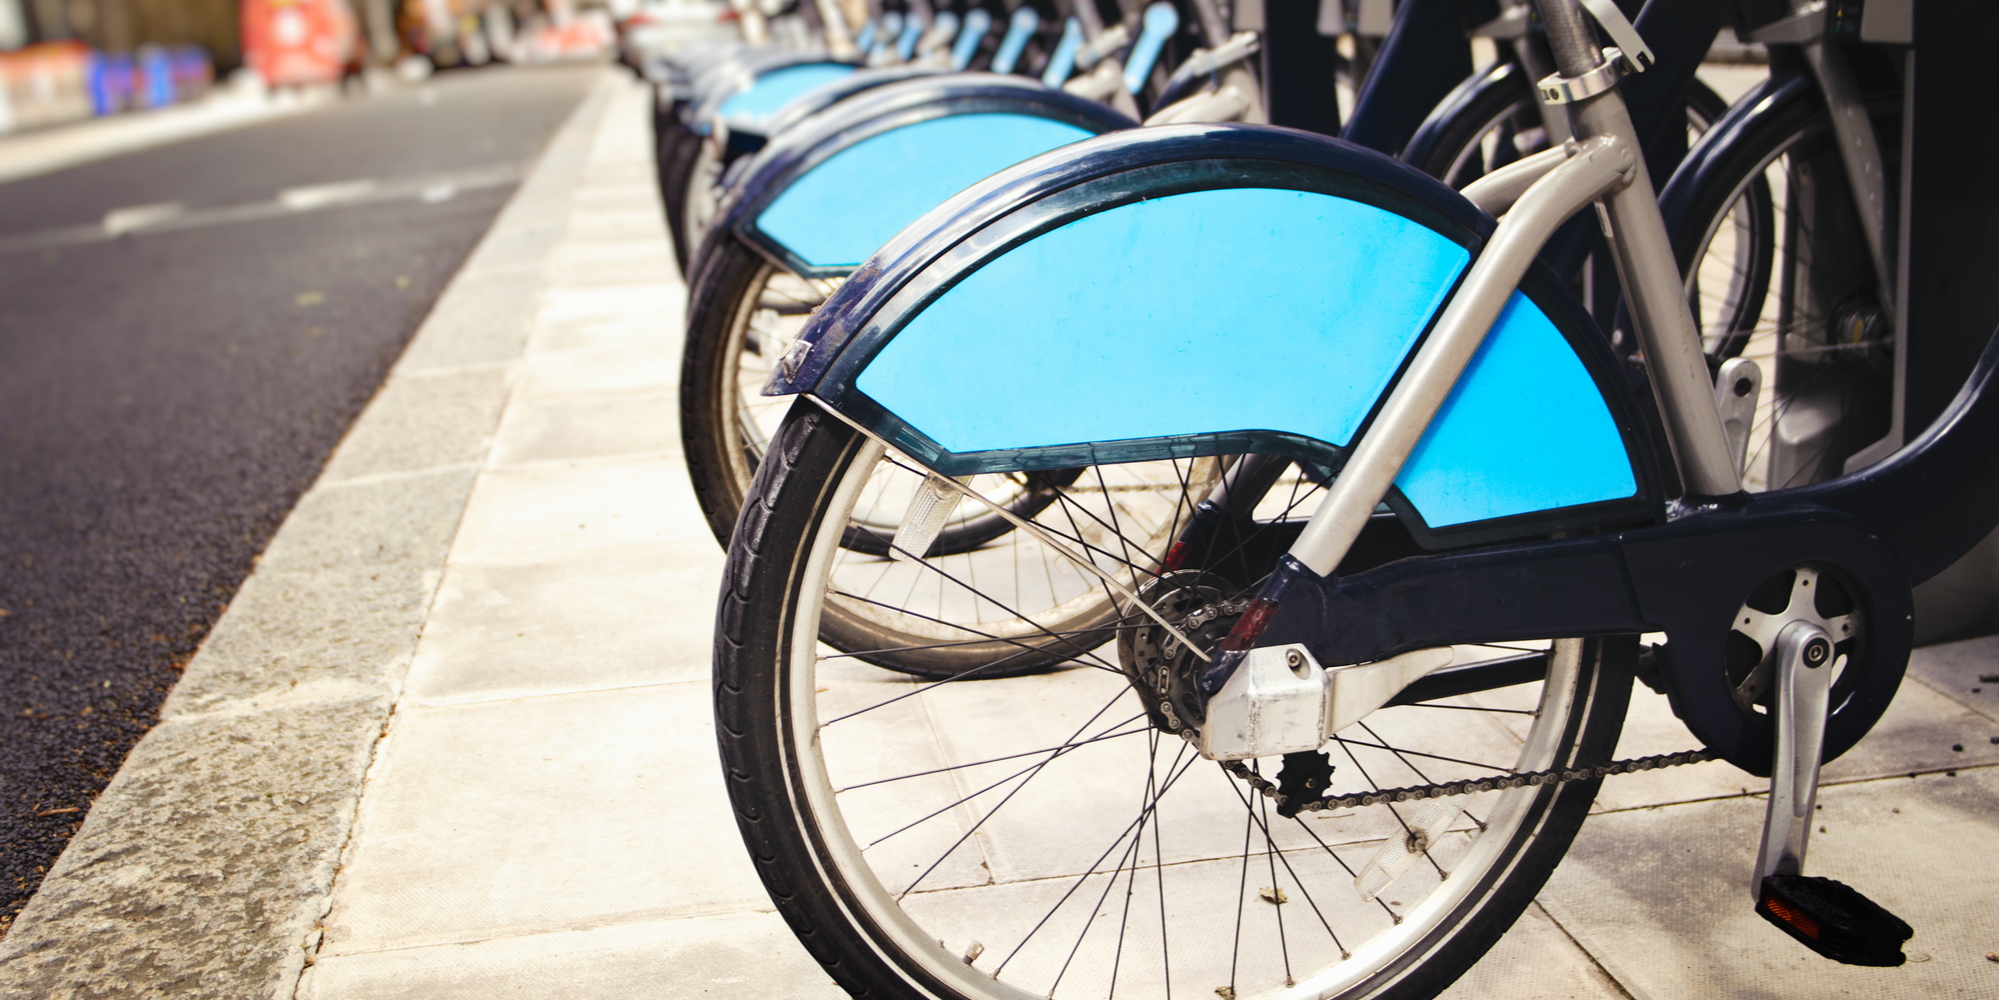 We have a window of opportunity to start a green transport revolution – let's not squander it